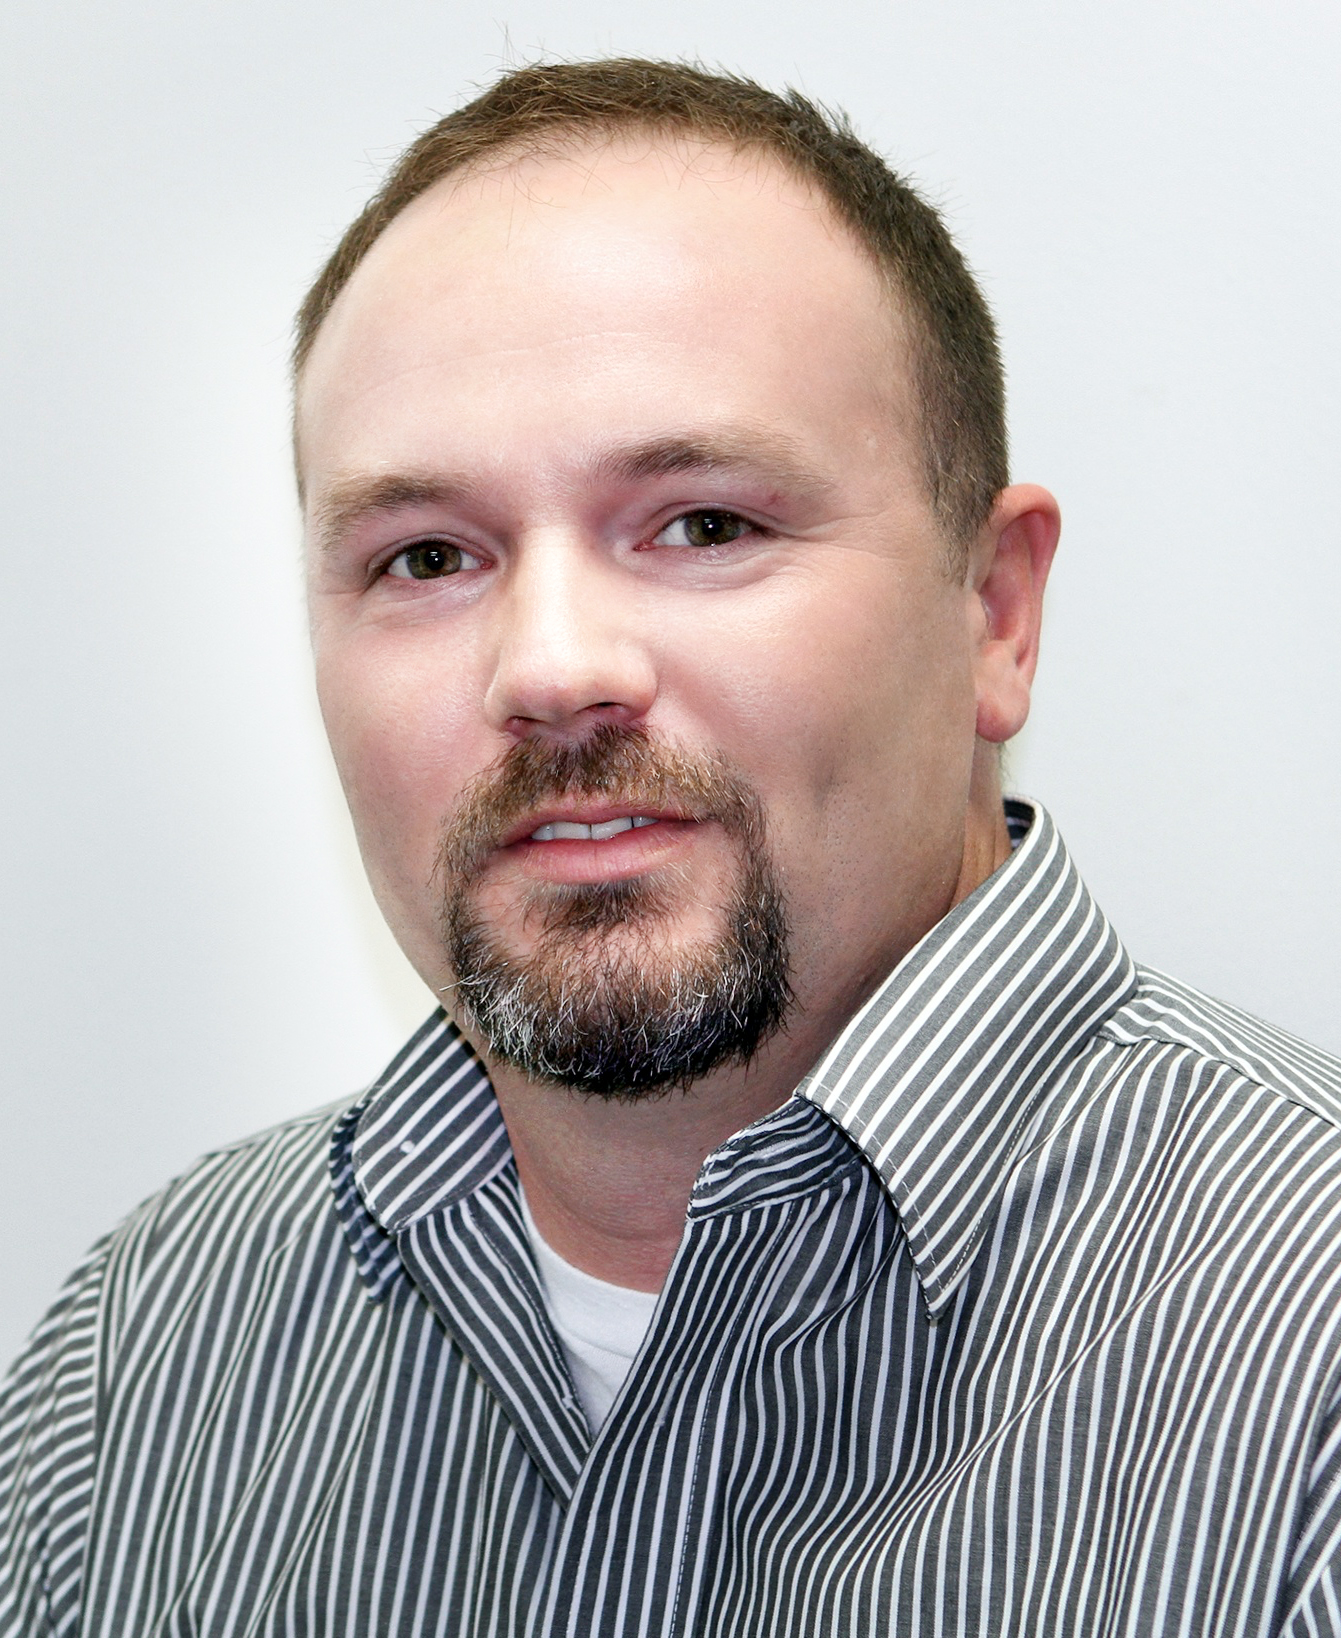 Mike Schwaller Joins Integrated Facility Services Ifs